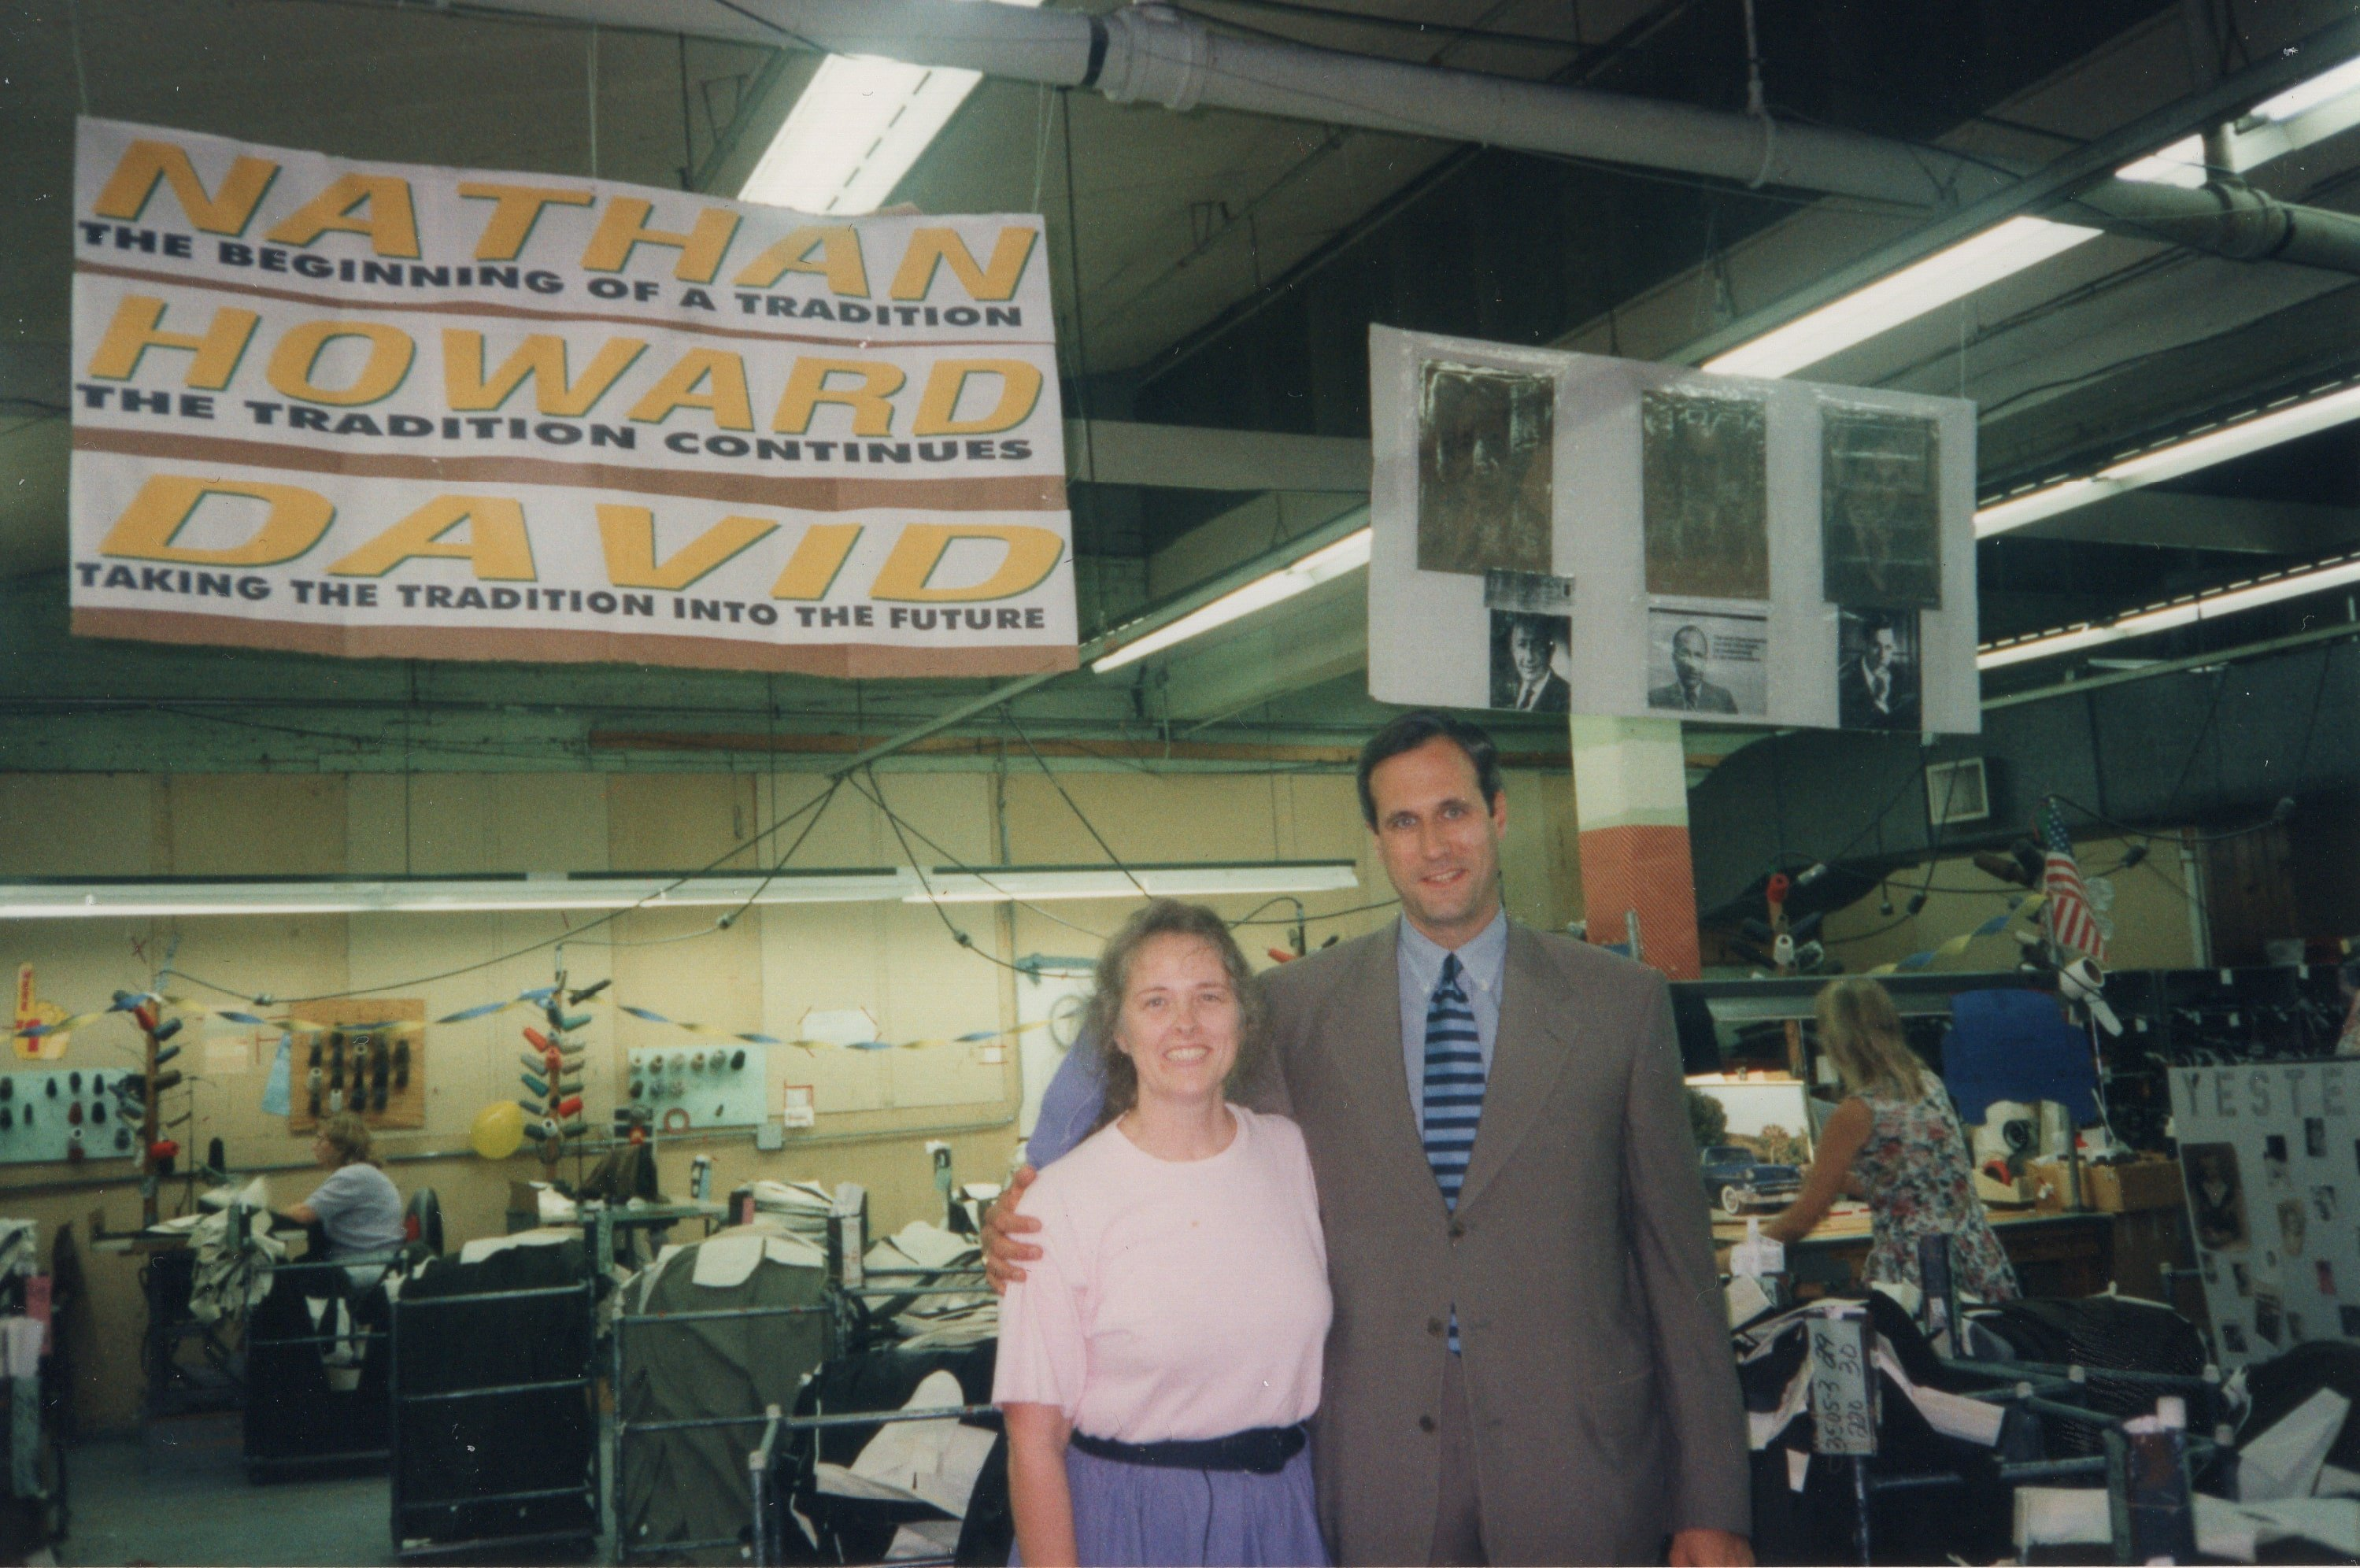 Corbin Ltd. Machine Operator Merna Saddler and President David Corbin, Huntington, WV, 1997